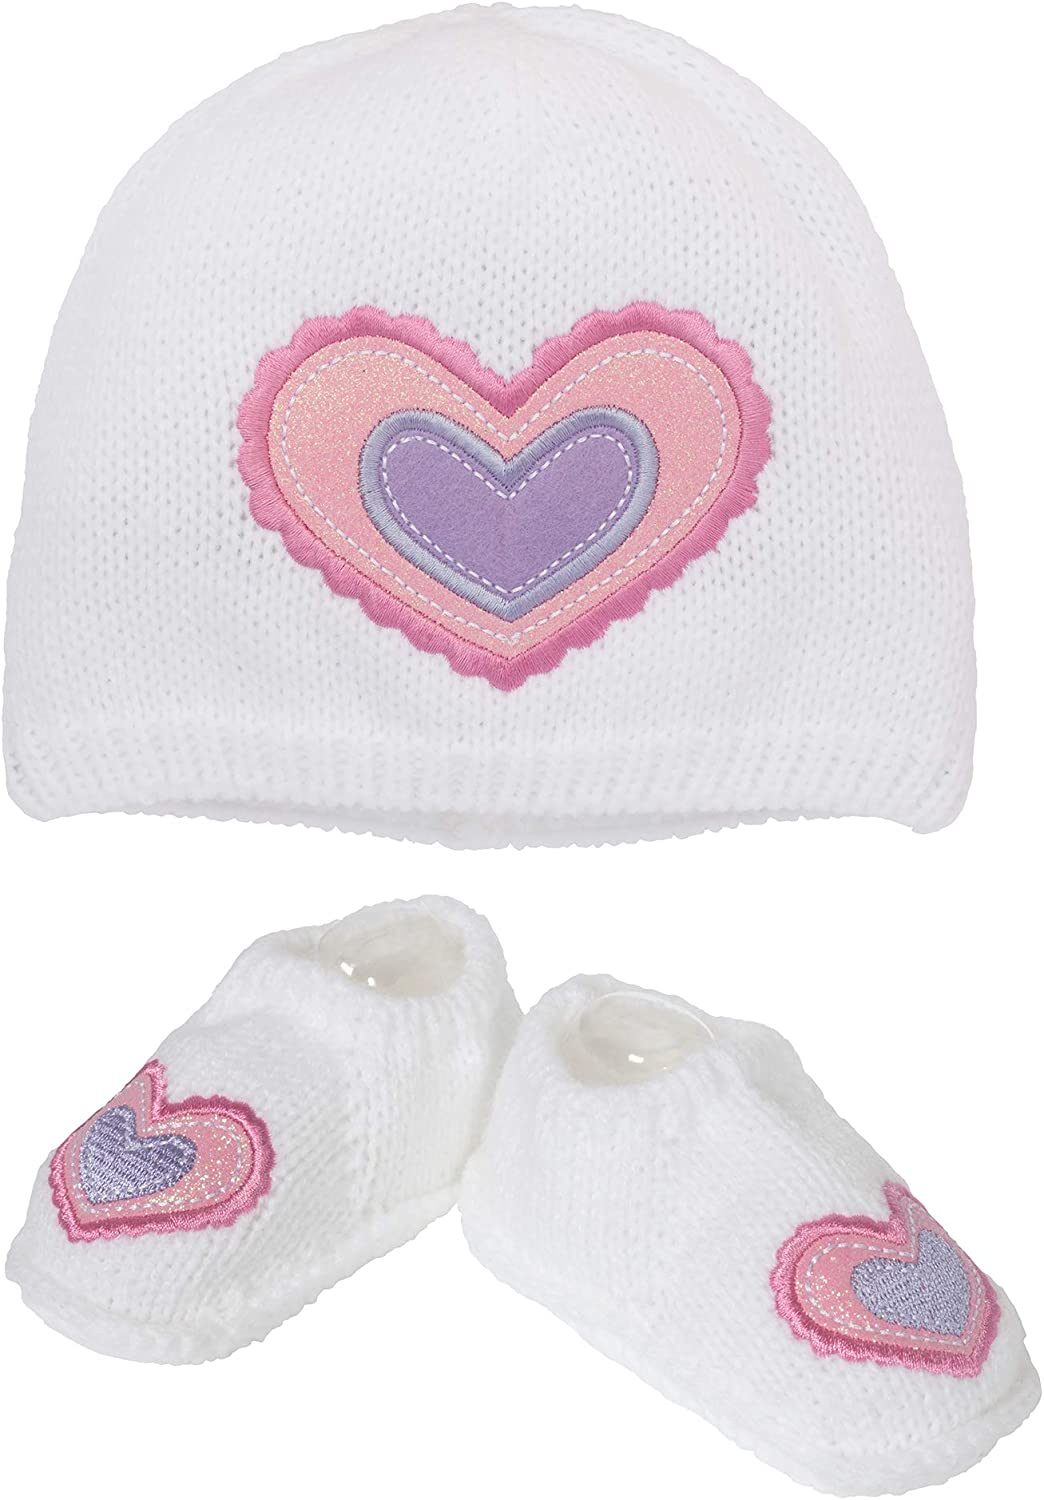 So Dorable Girls' Sweater Baby Hat and Booties, 0-6 Months